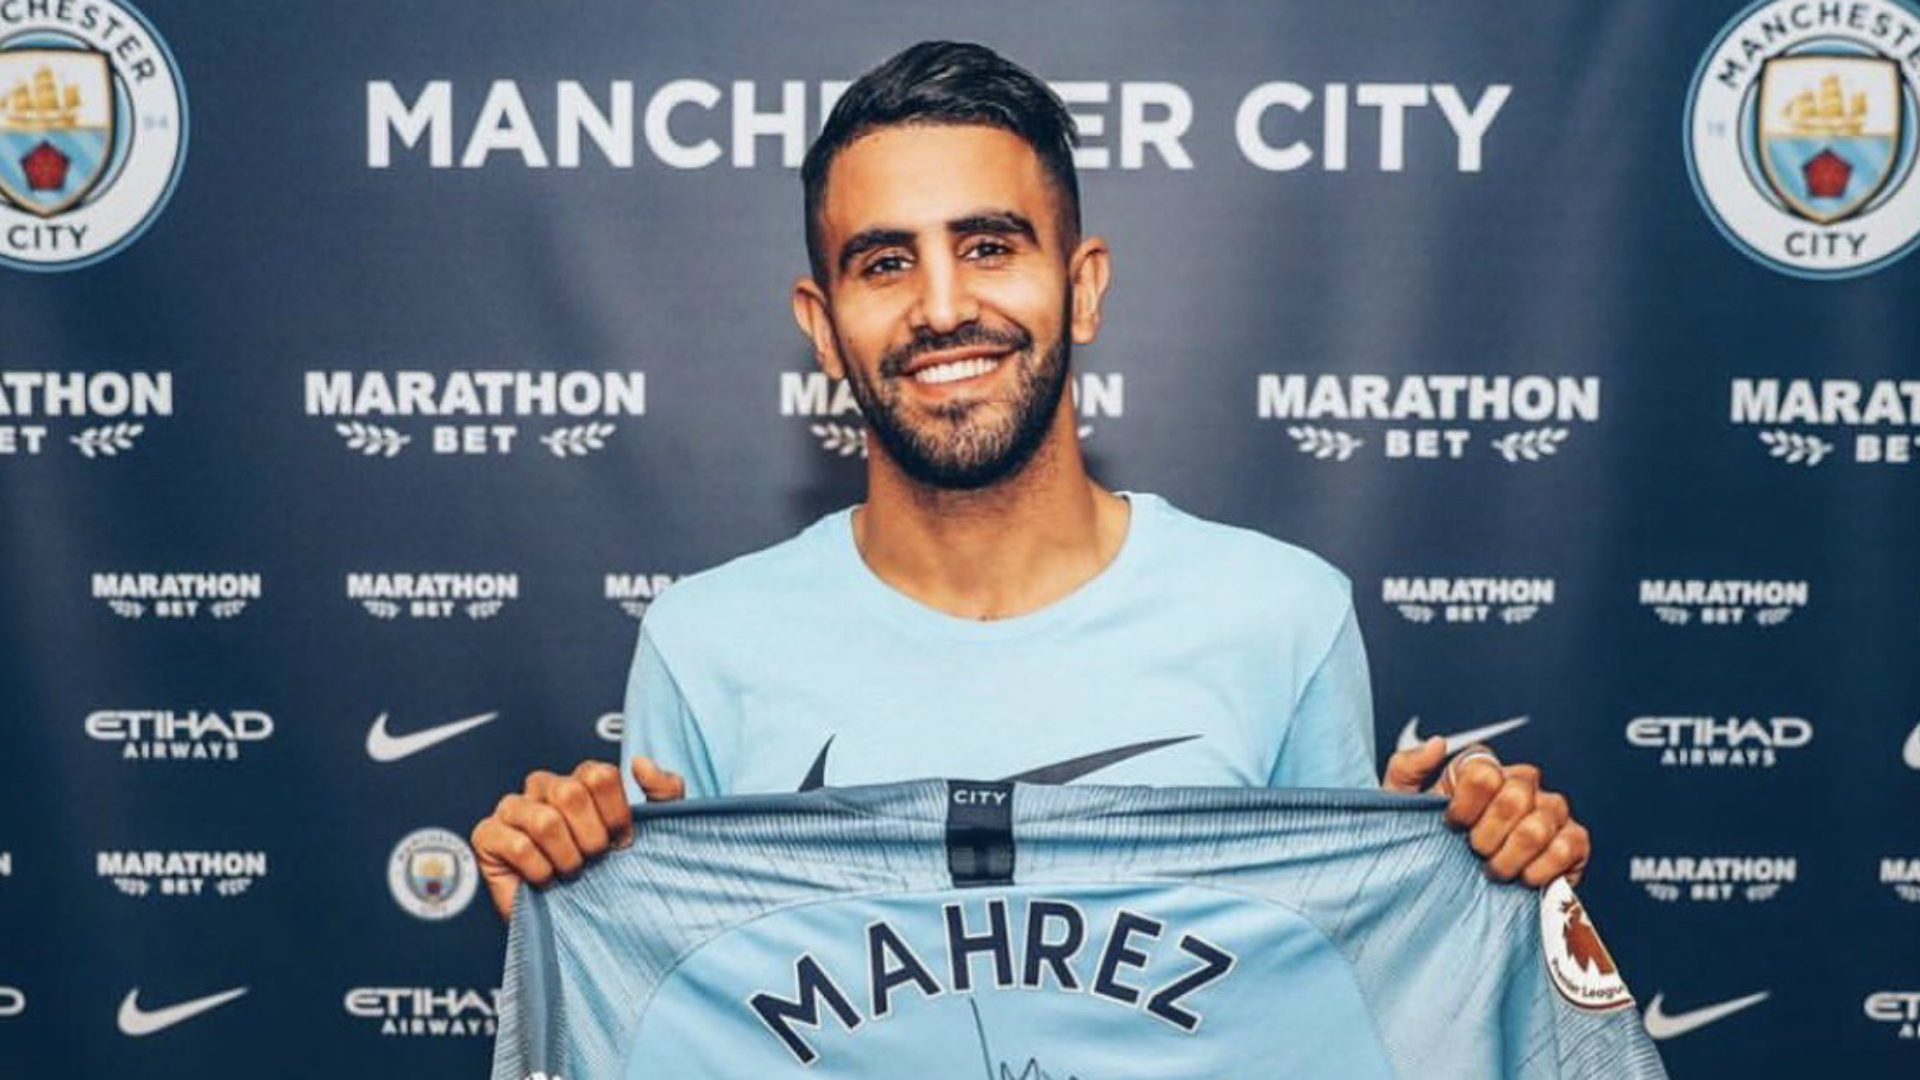 Riyad Mahrez: I want to win the Champions League with Manchester City